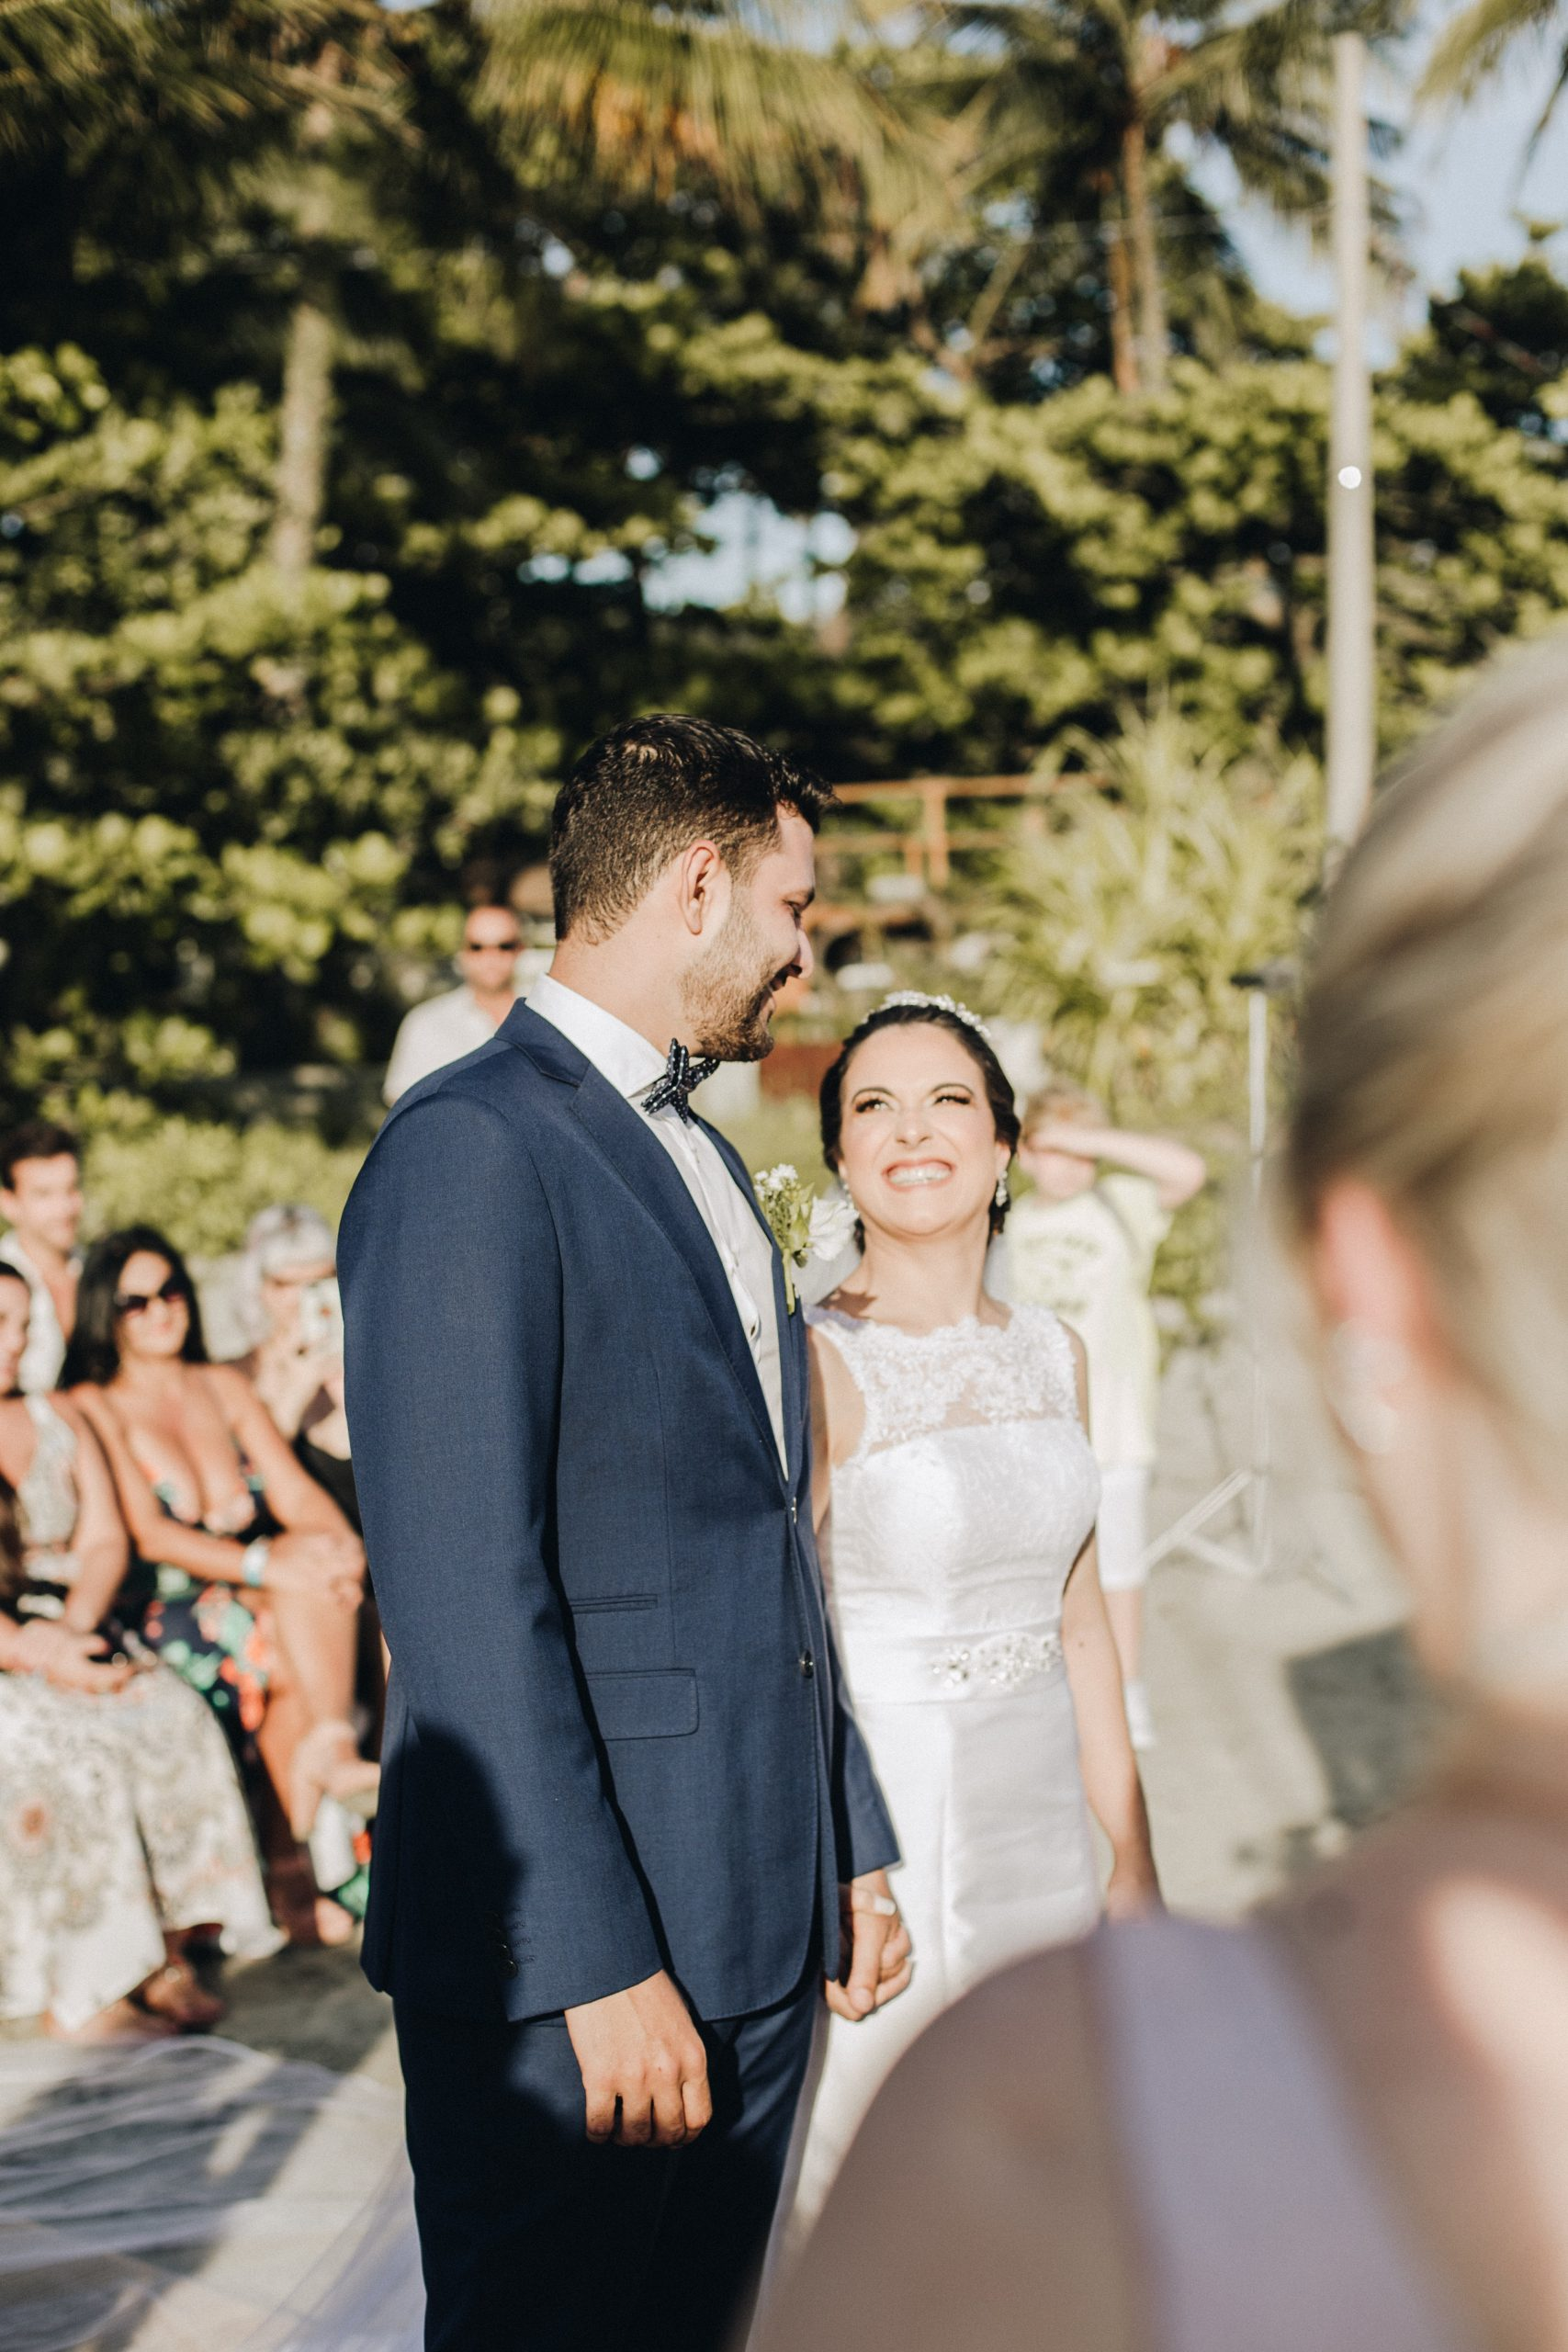 bride and groom looking into each others eyes as they exchange wedding vows in an outdoor setting